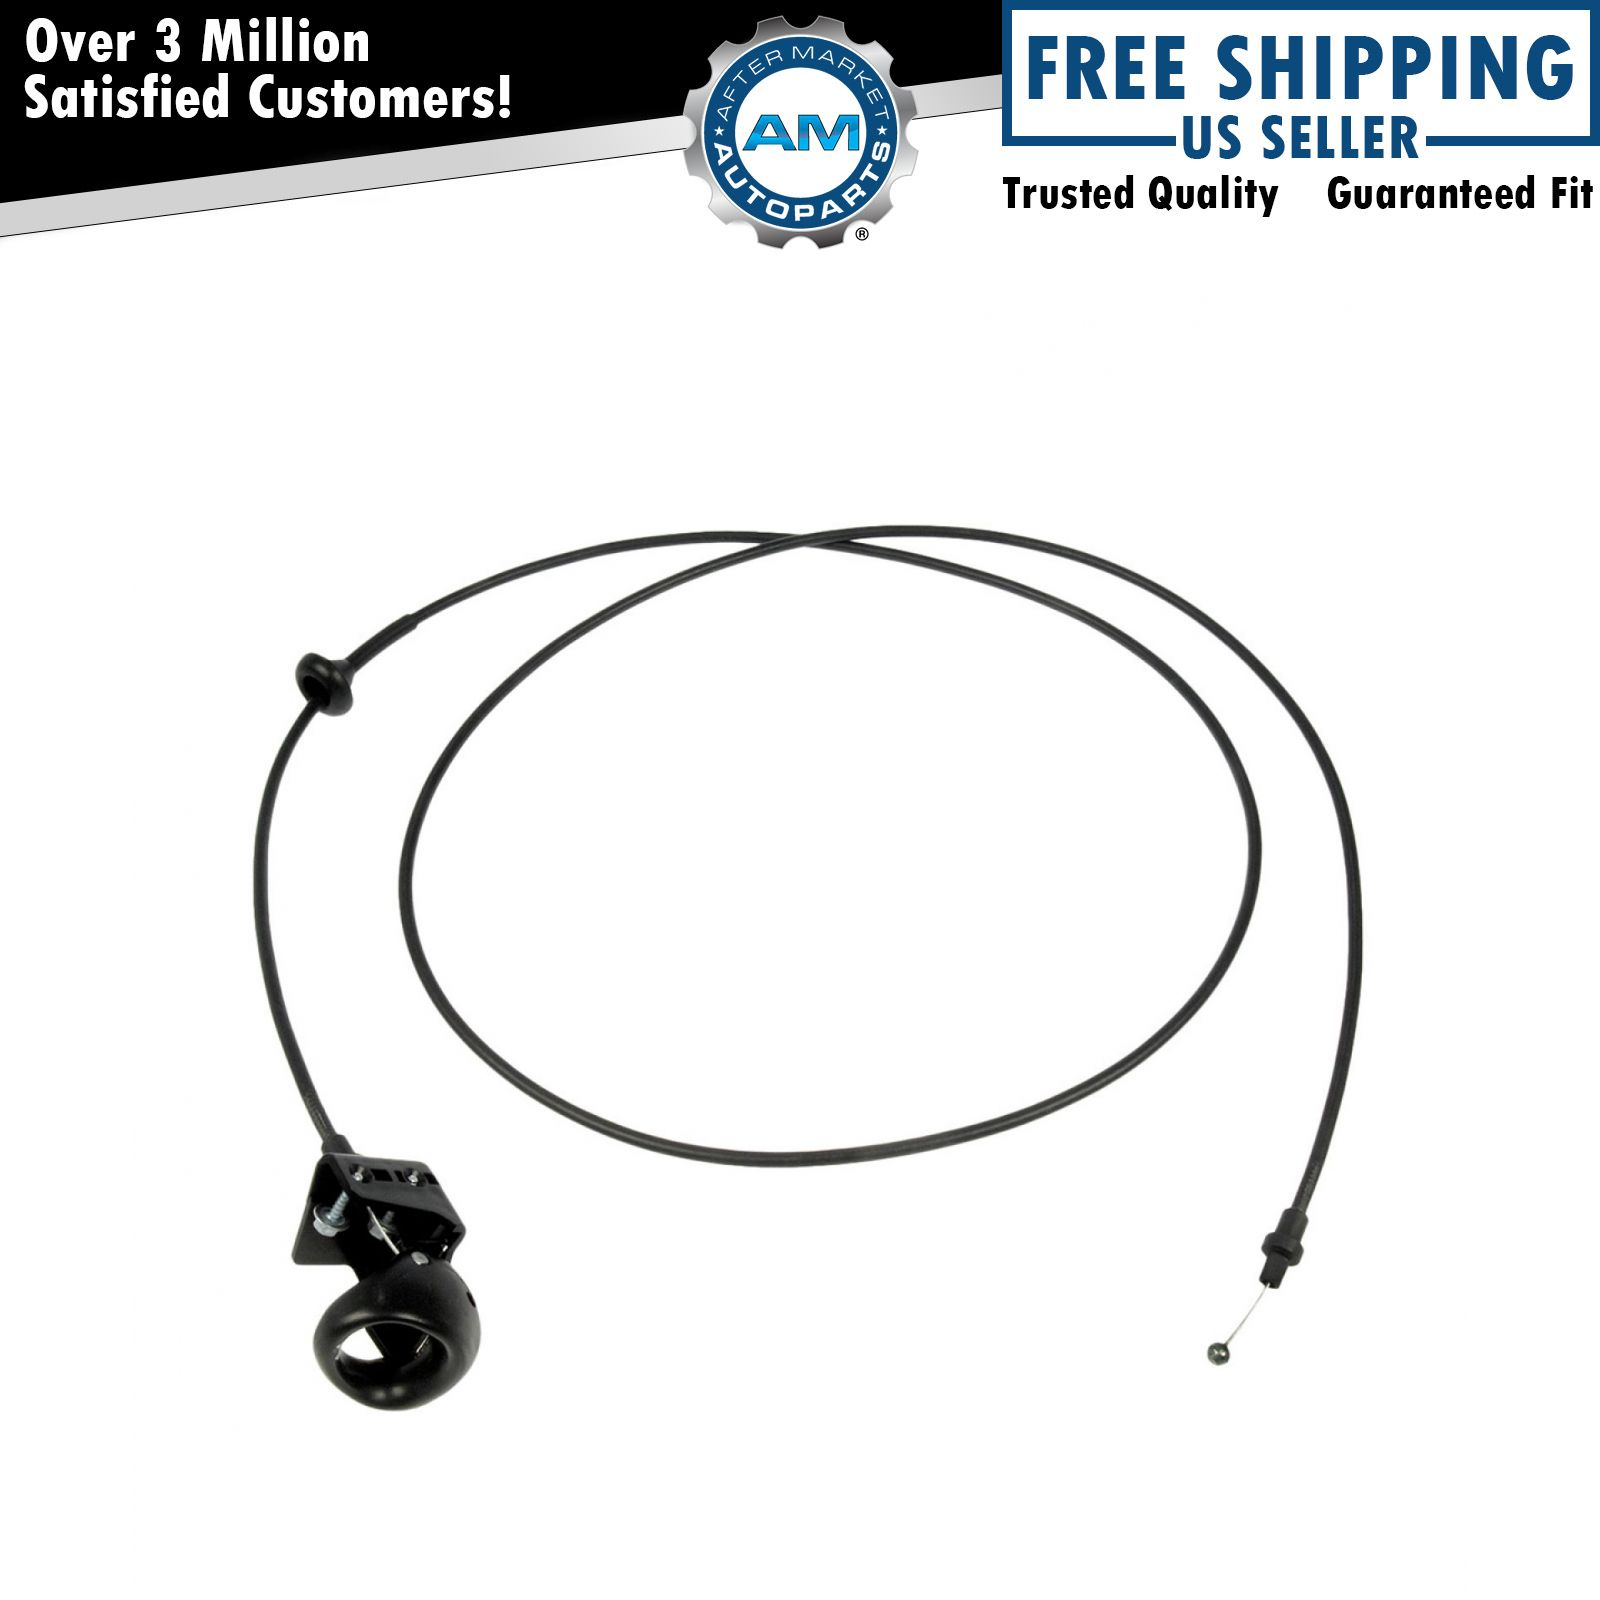 Hood Release Pop Actuator Cable With Handle For Ford